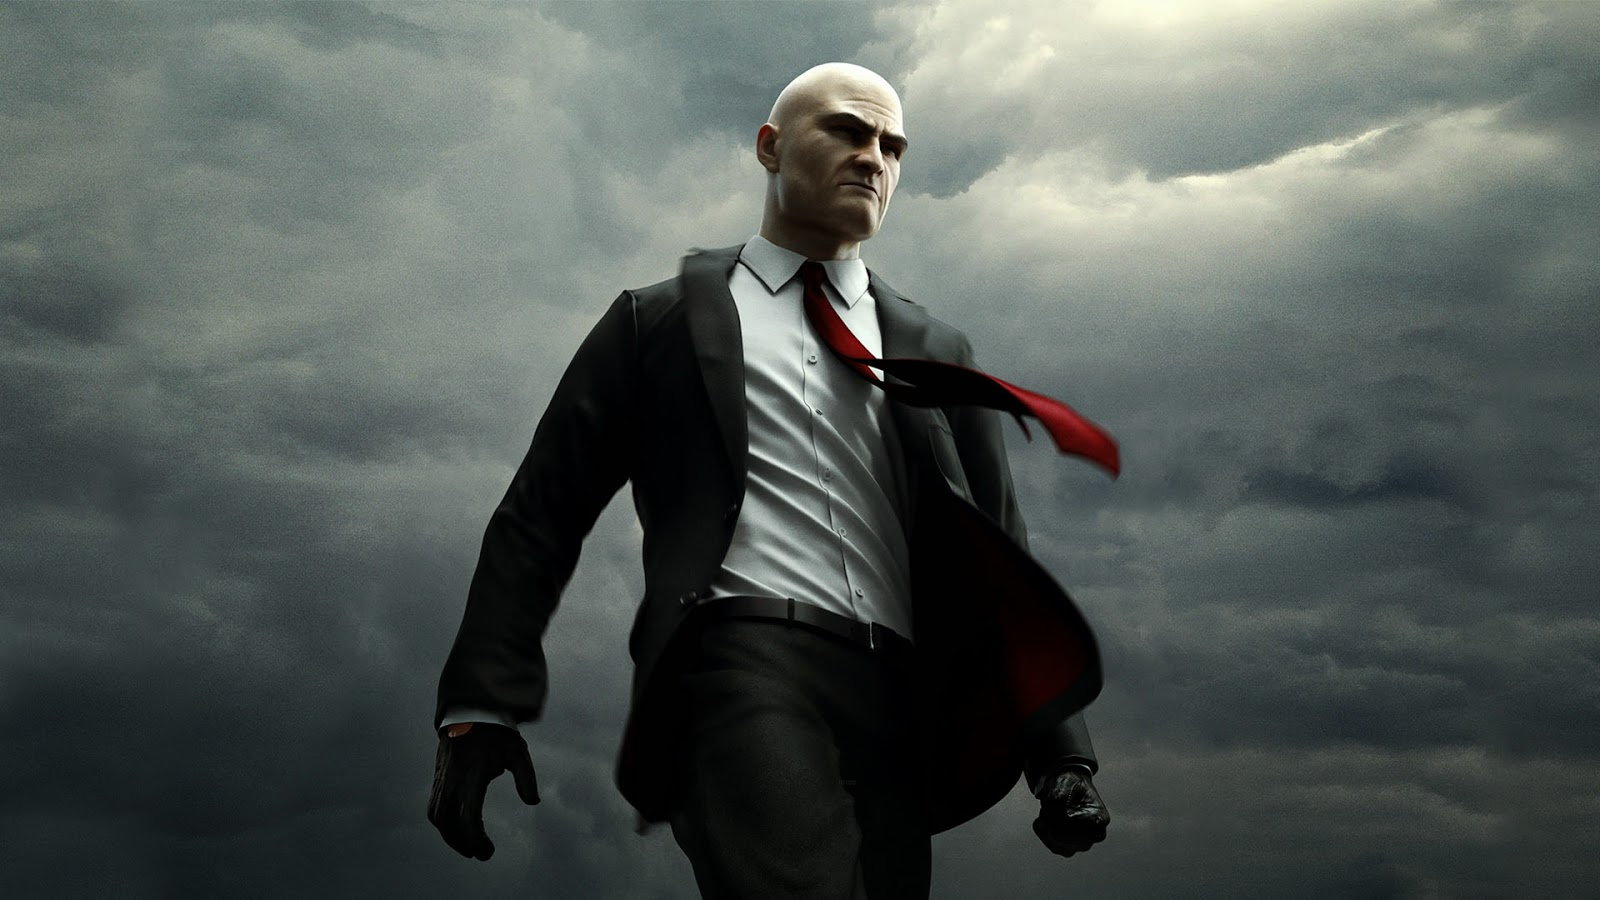 Hitman Absolution dowload for free